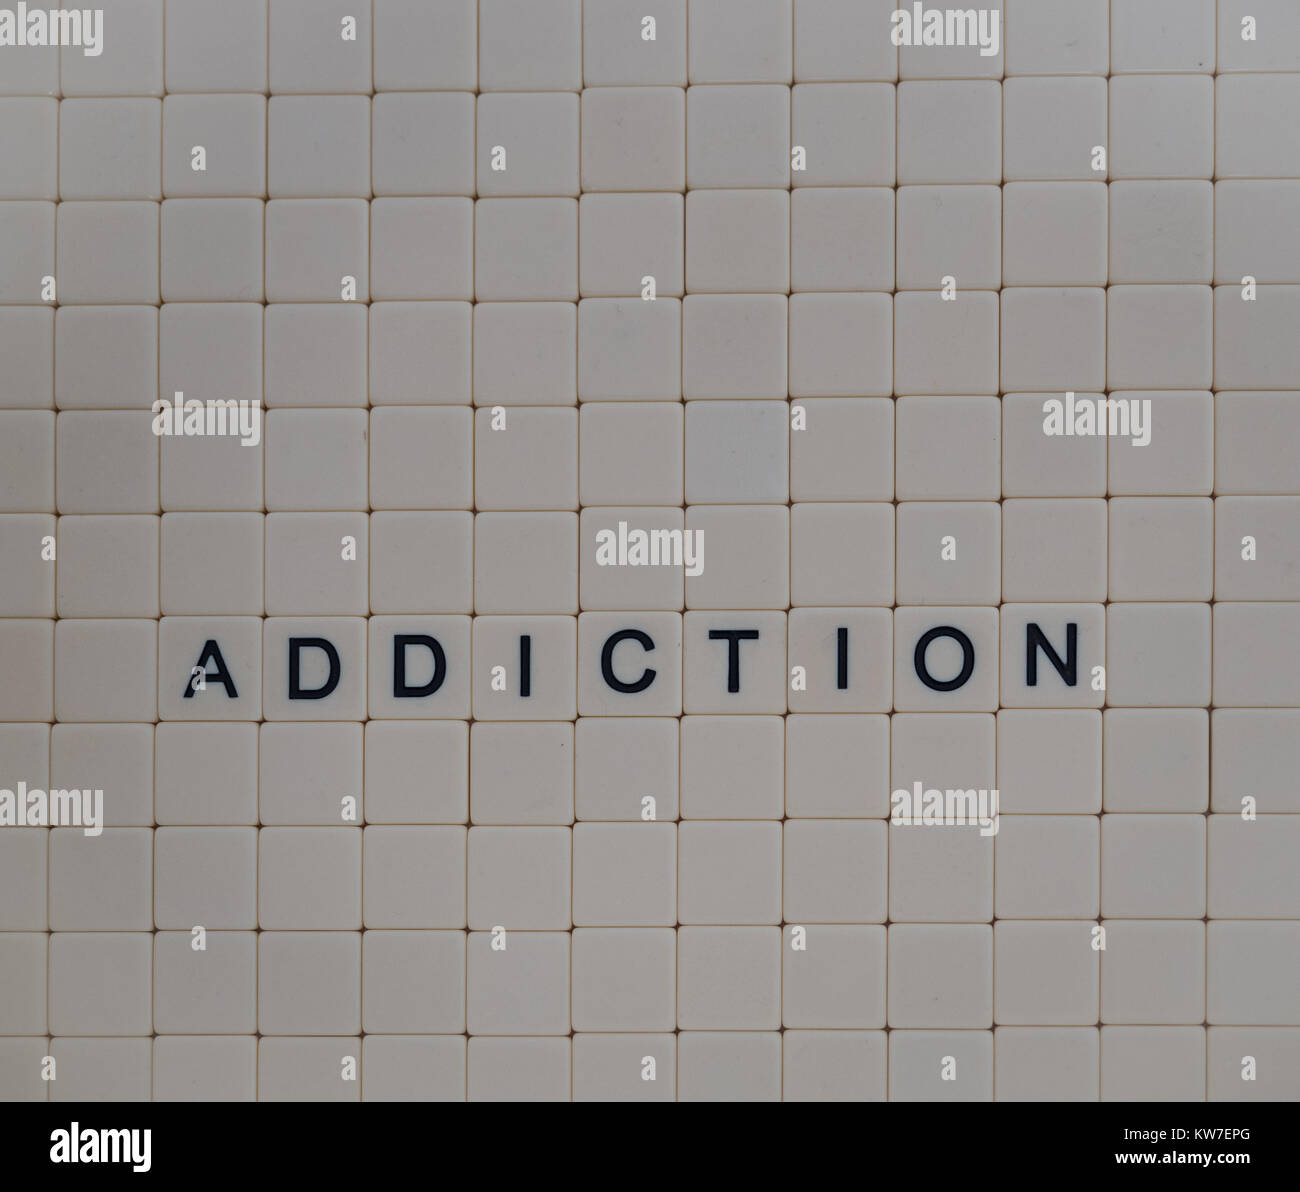 Addiction spelled in black capital letters on beige tiles with a background of off white tiles. Photographed from - Stock Image